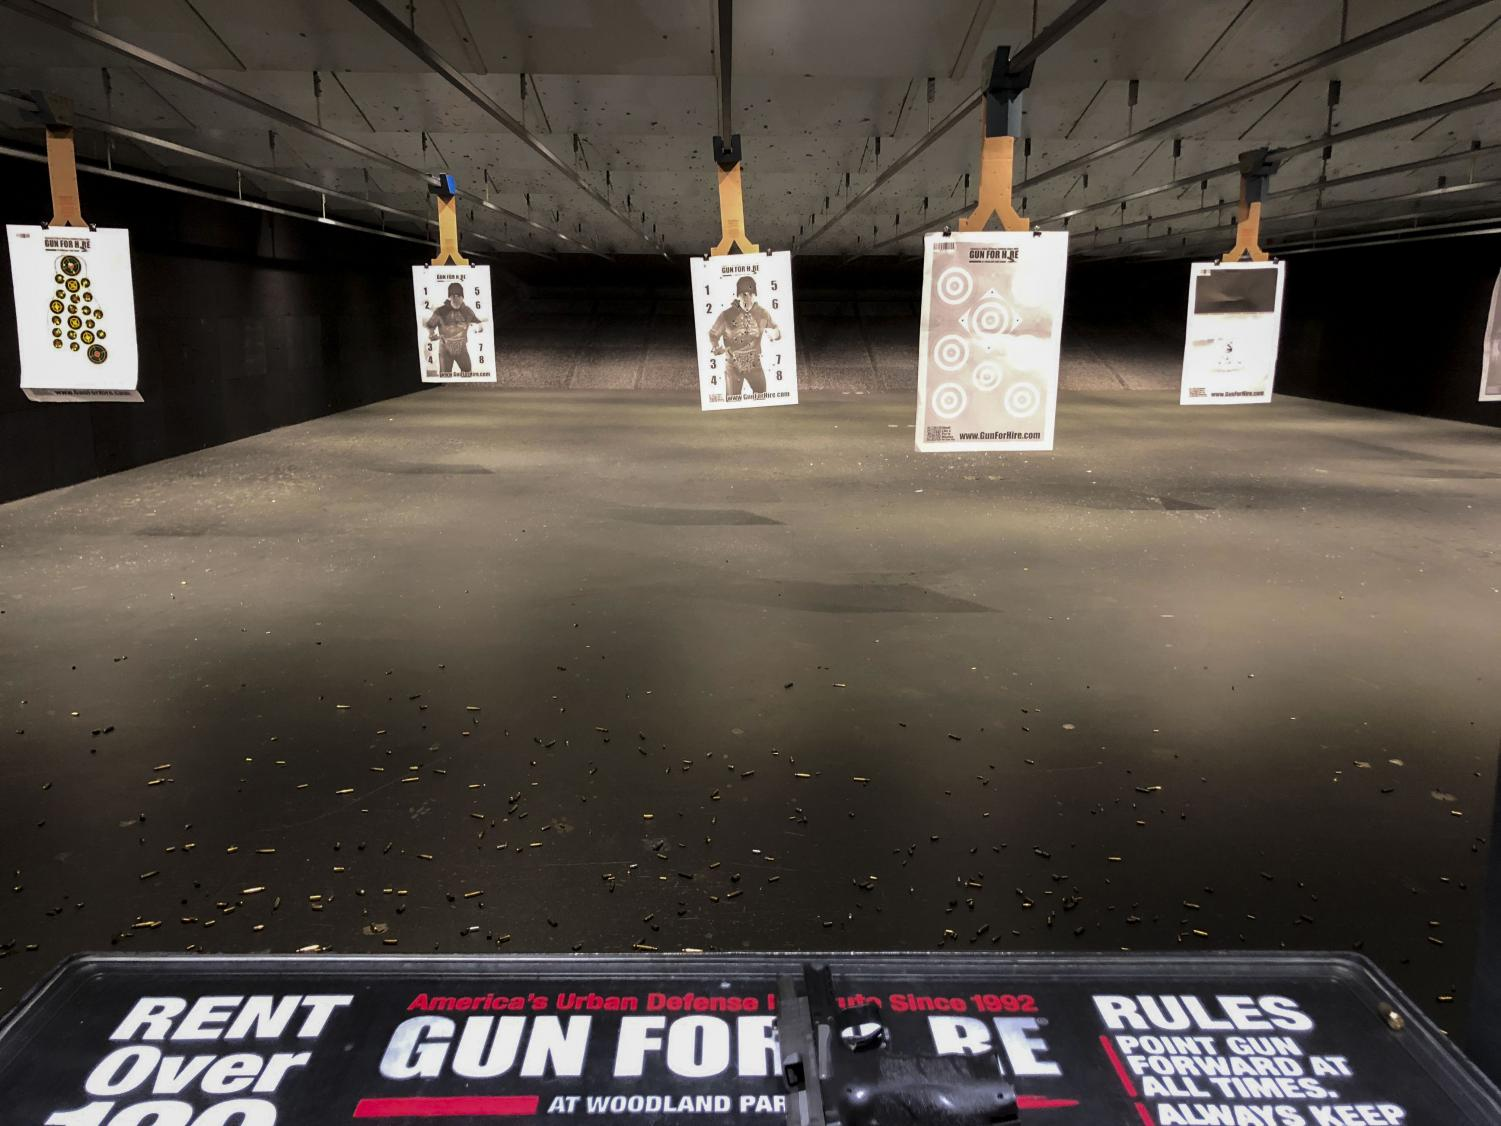 PV Junior Danny Moallem recently visited a shooting range. He discusses his side on the ongoing gun debate in America.